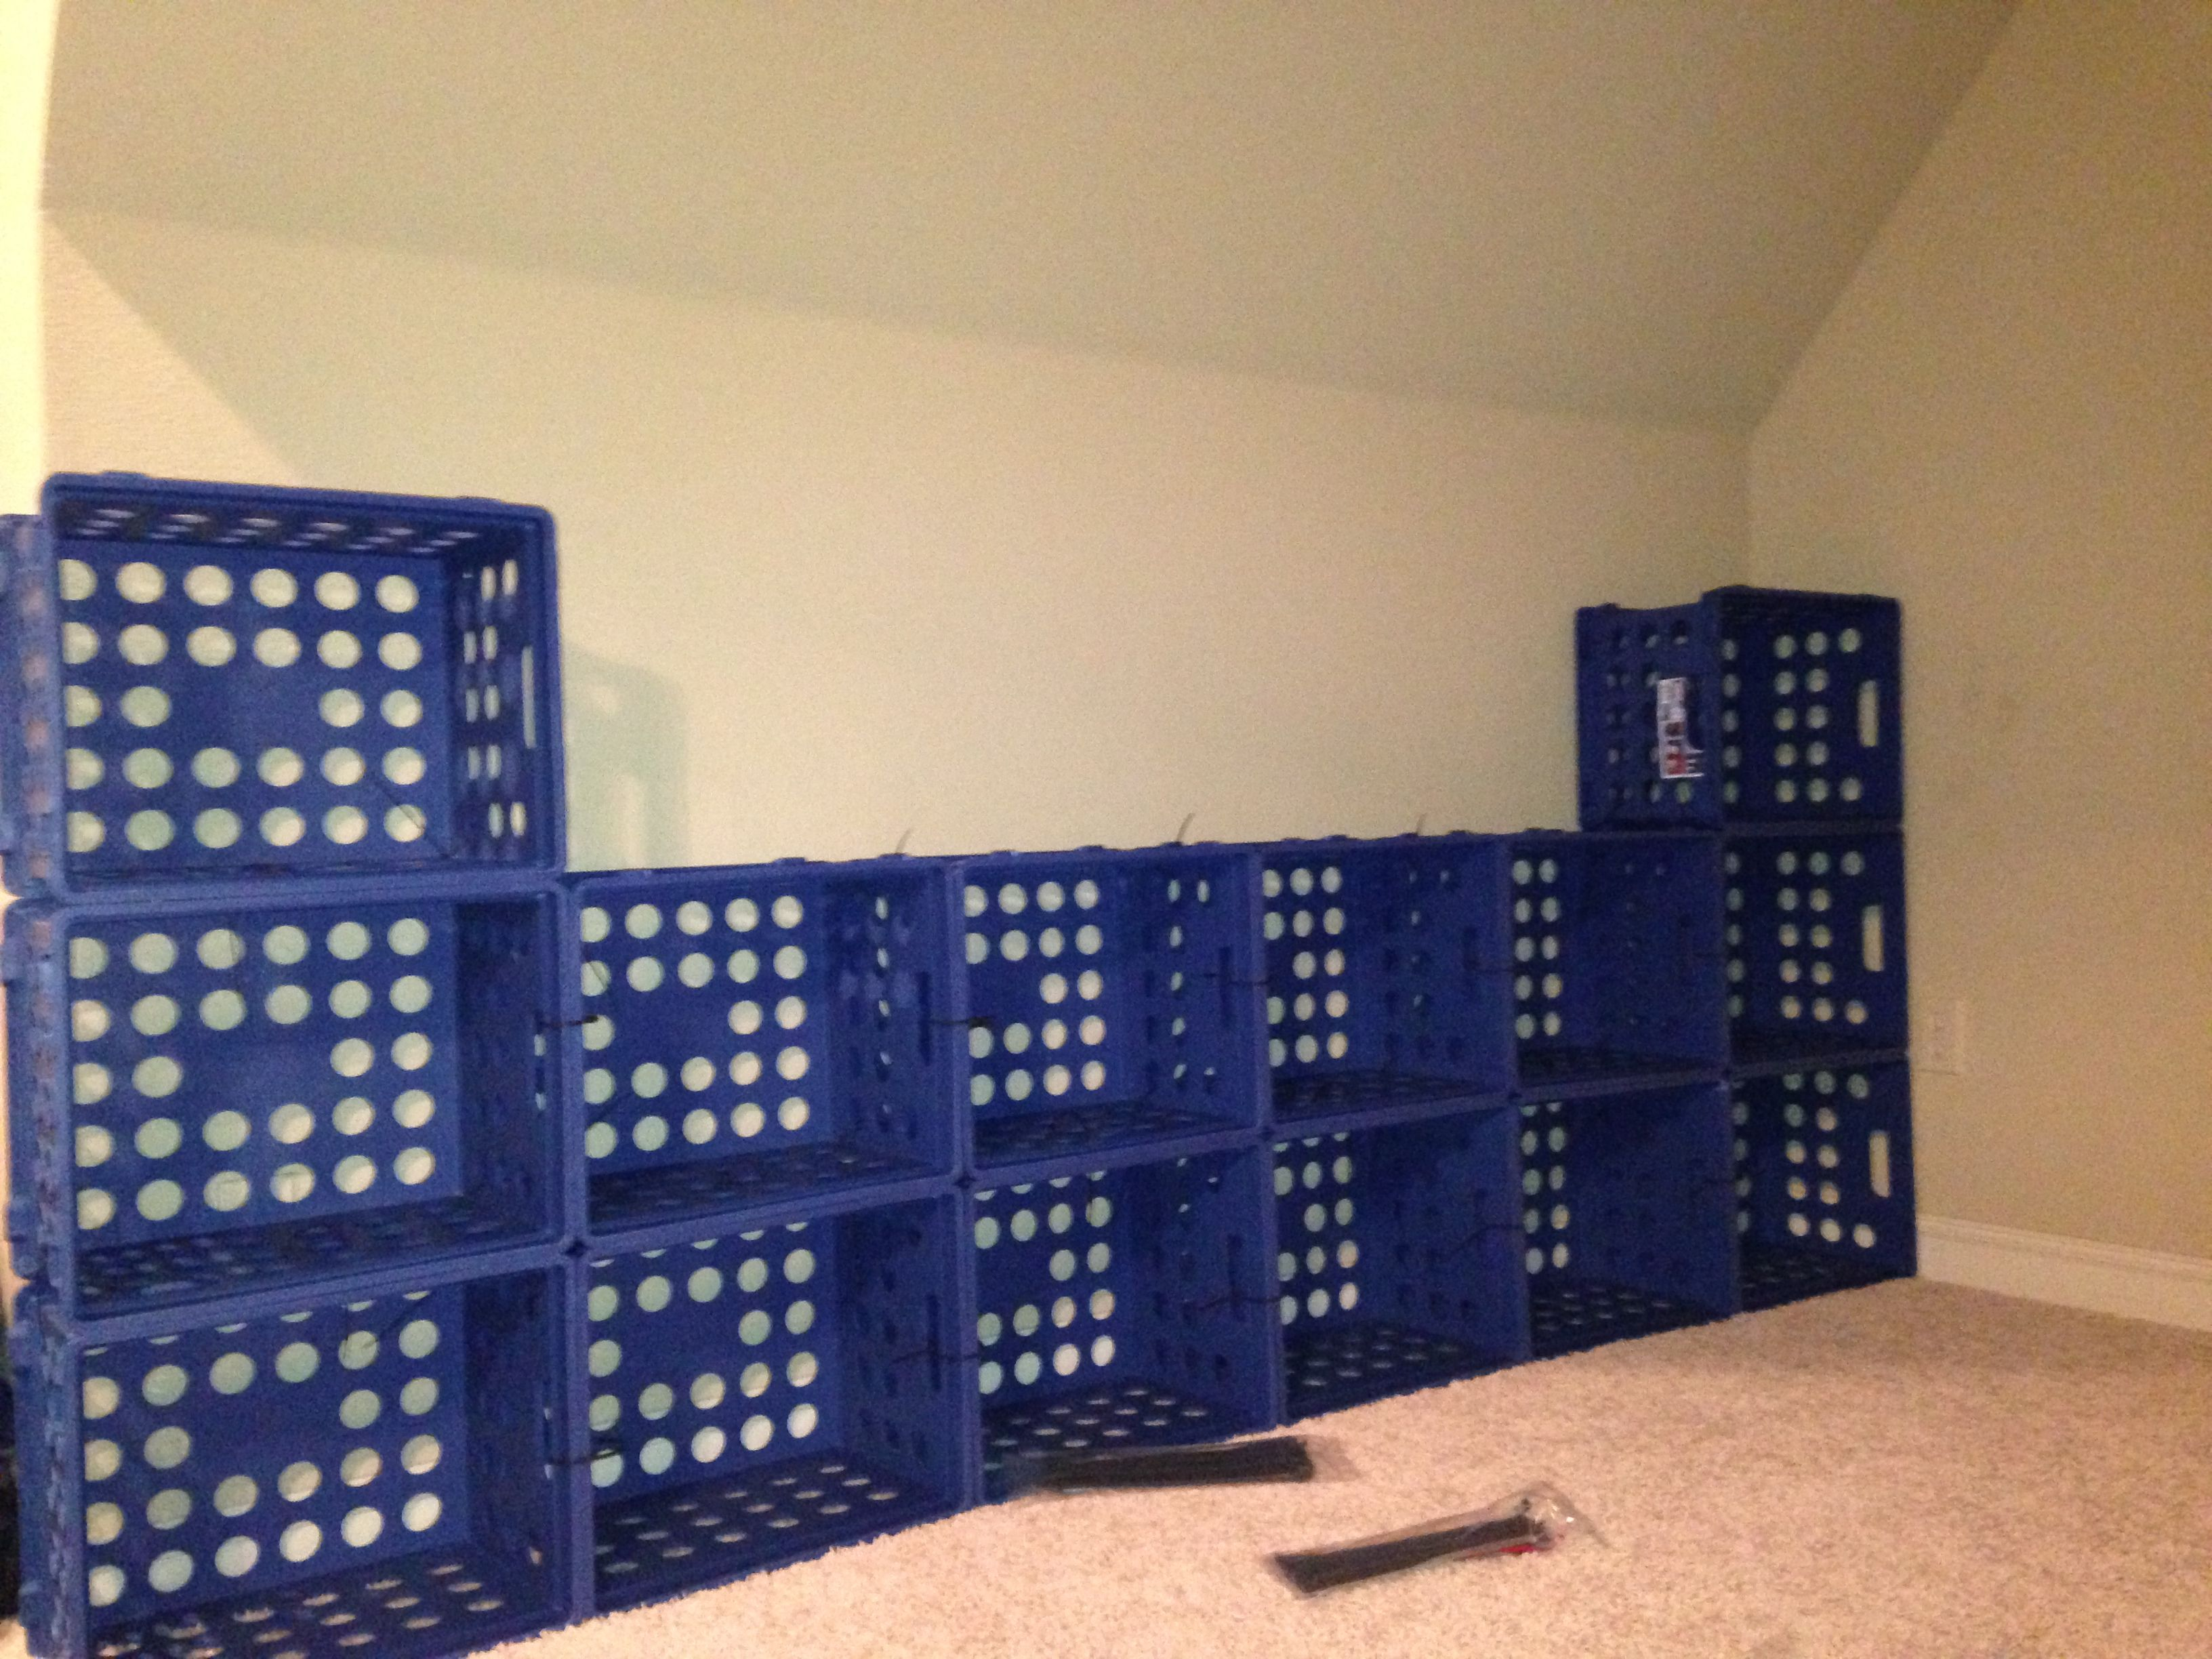 Zip Tie Plastic Crates Together For Storage Using Mine To Build A